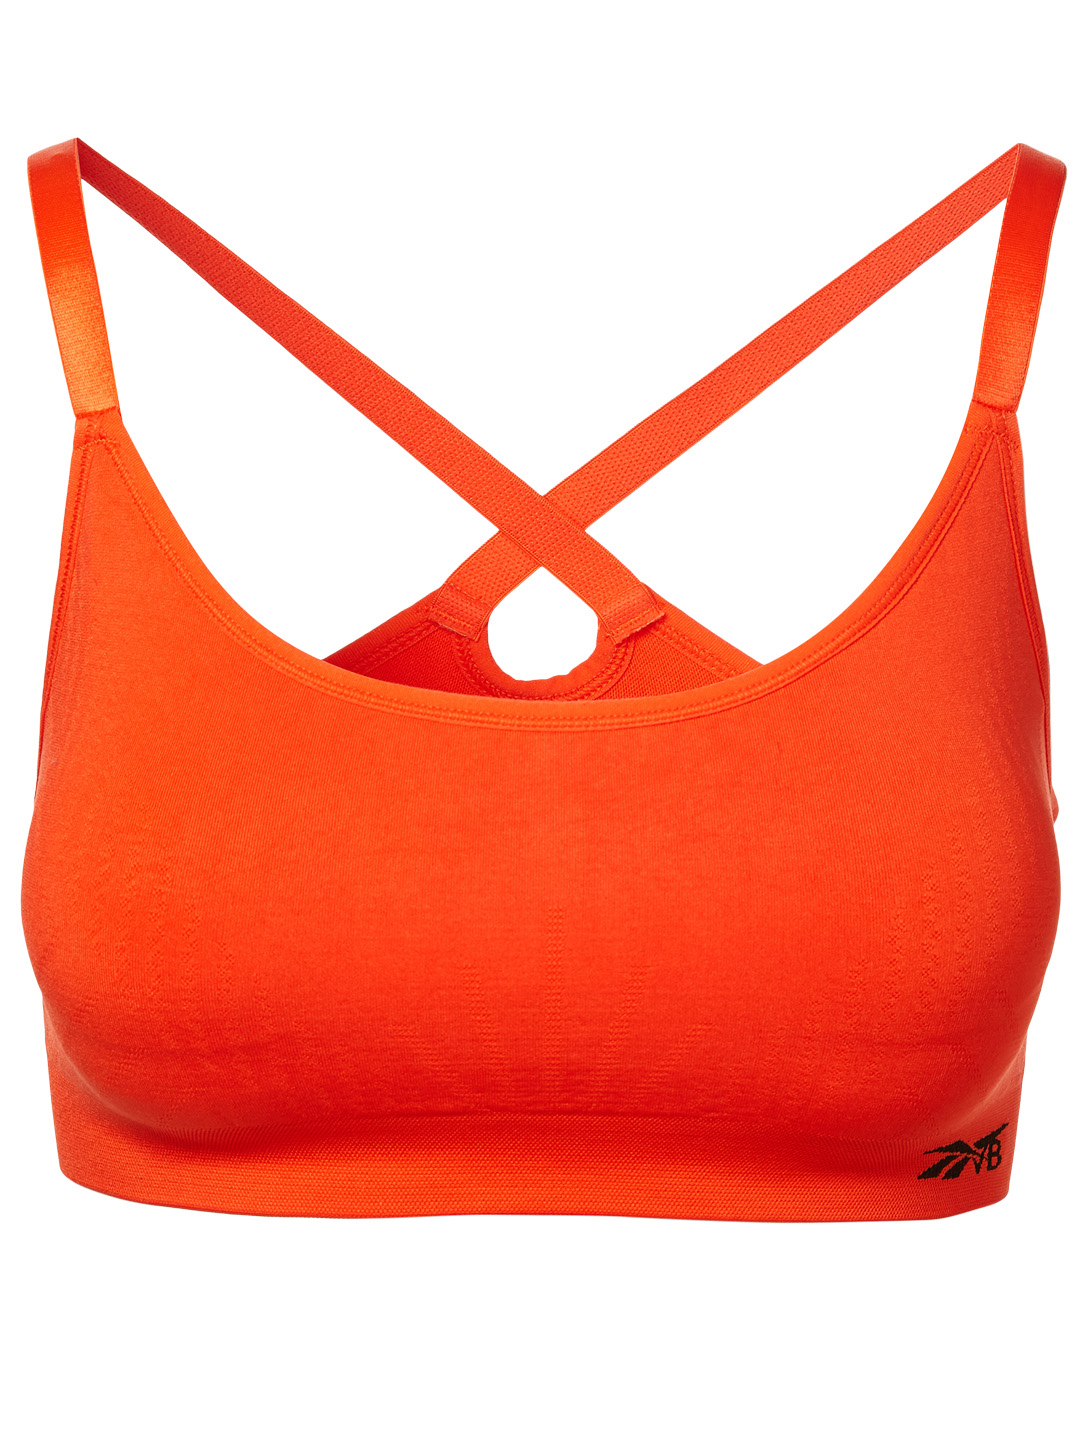 REEBOK X VICTORIA BECKHAM Seamless Sports Bra Women's Orange